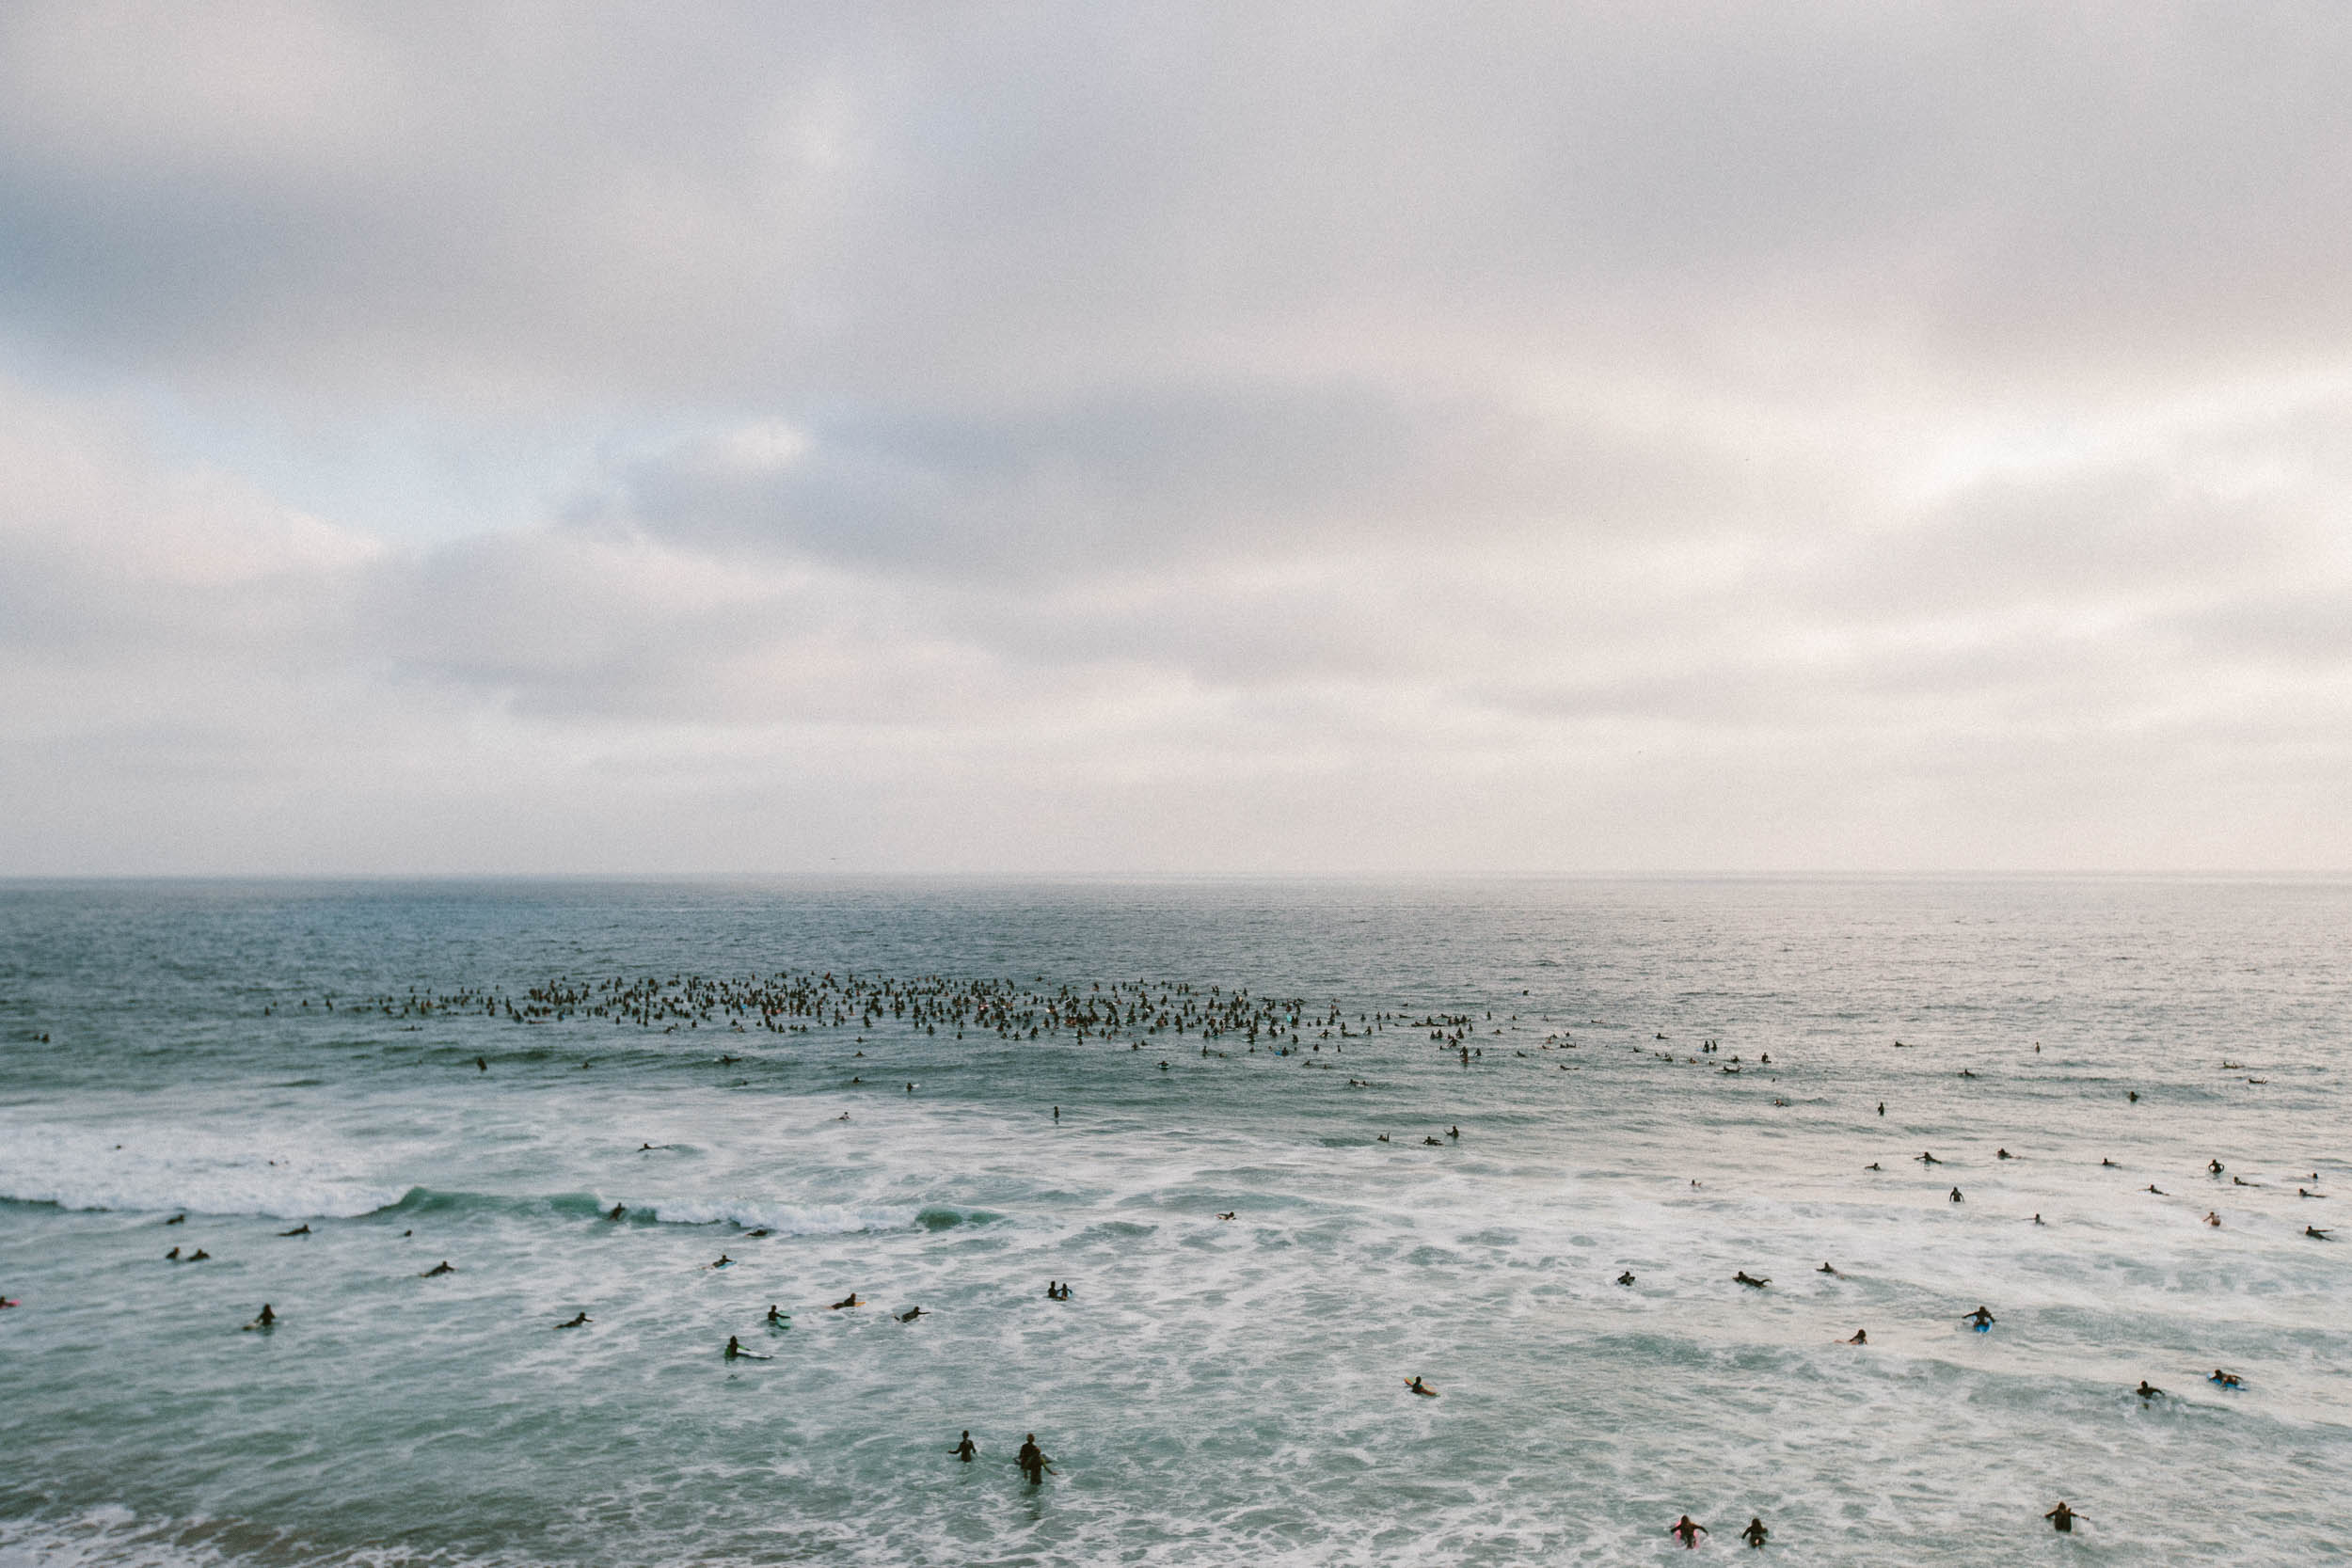 One of the largest paddle-out ceremonies Encinitas has ever seen.